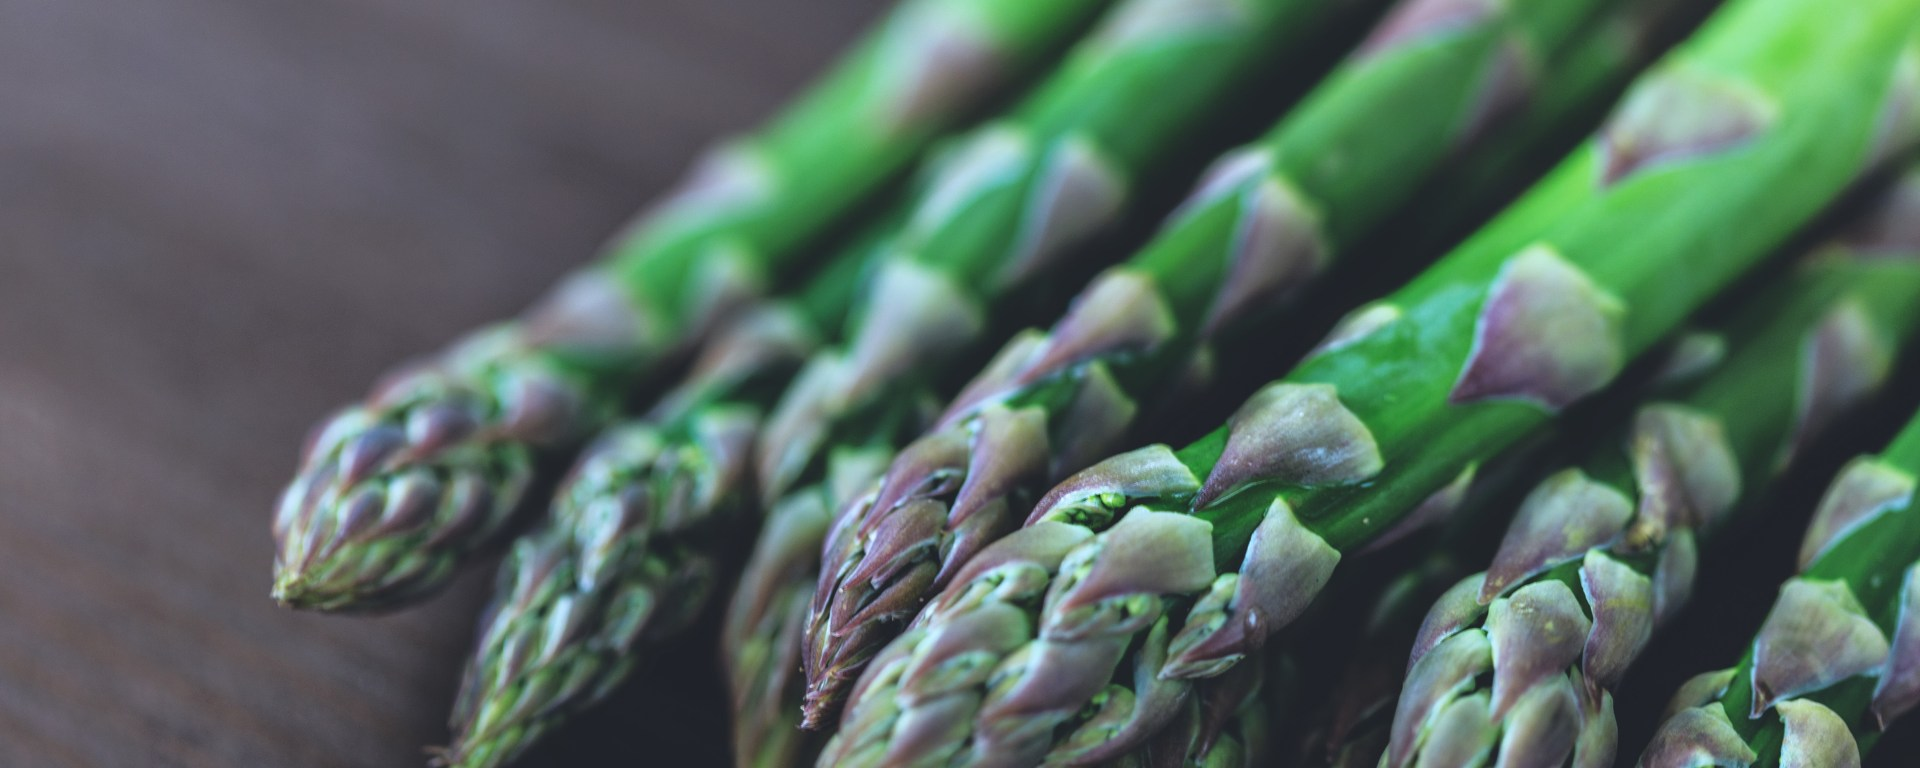 Fresh green asparagus on table